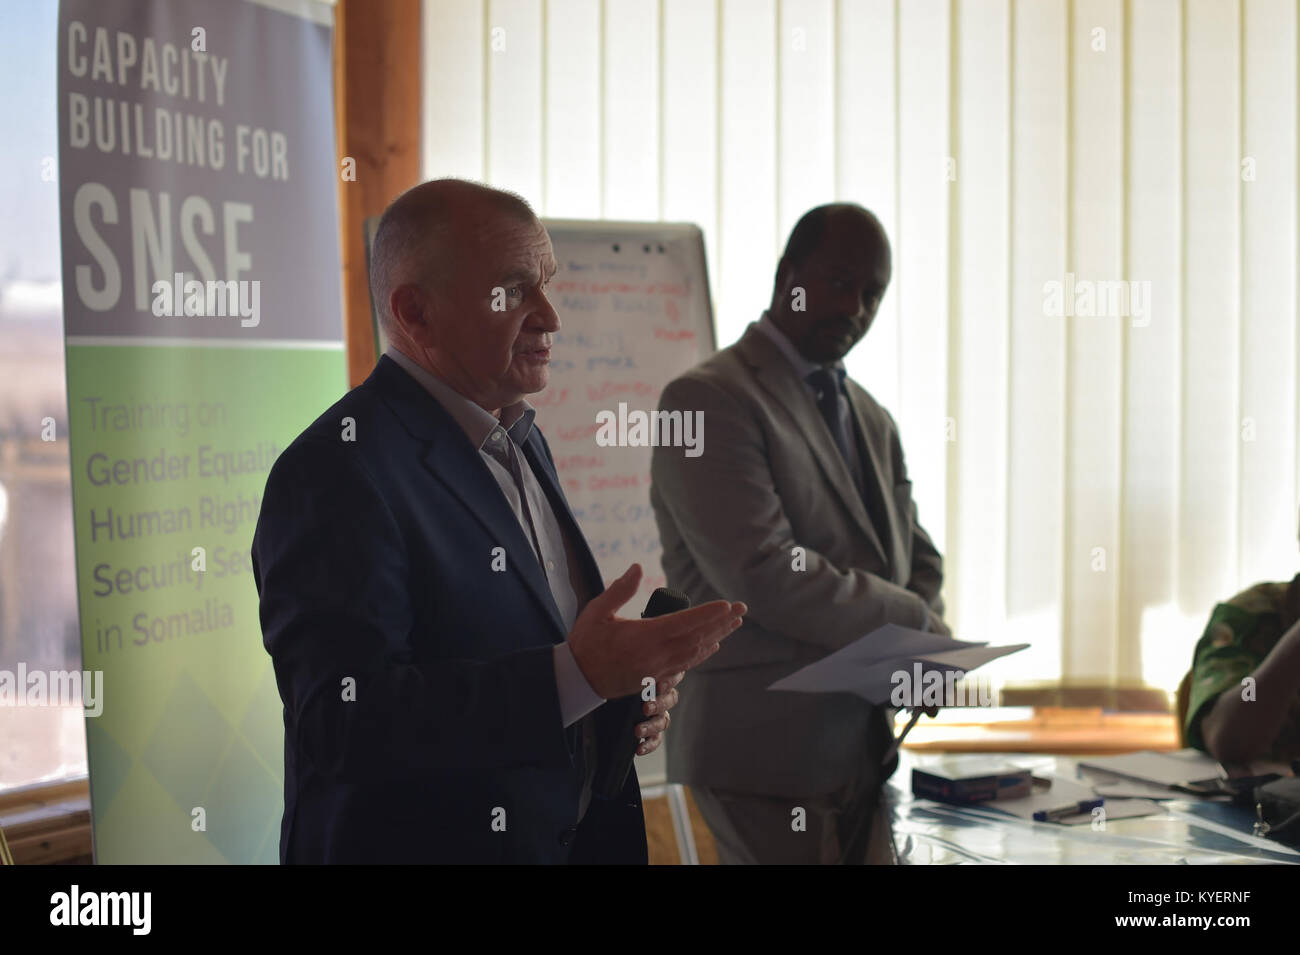 Fgs Security somalia conflict, security, and stability fund (cssf